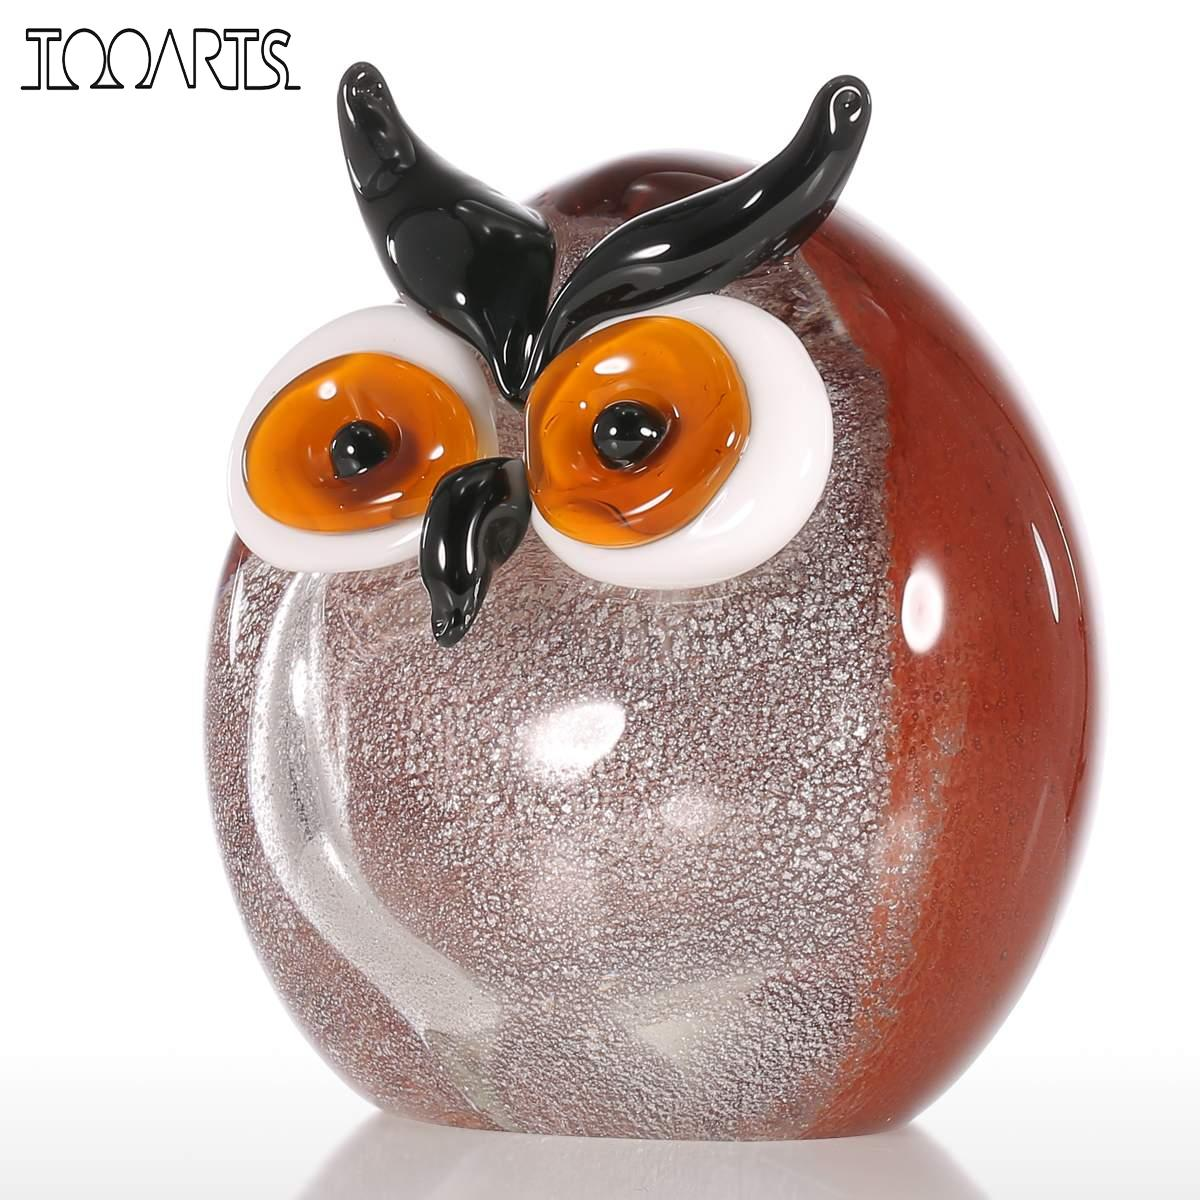 Tooarts Chubby Owl Figurine Glass Ornament Animal Statuettes Home Decoration Accessories Modern Handblown Home Decor Multicolor